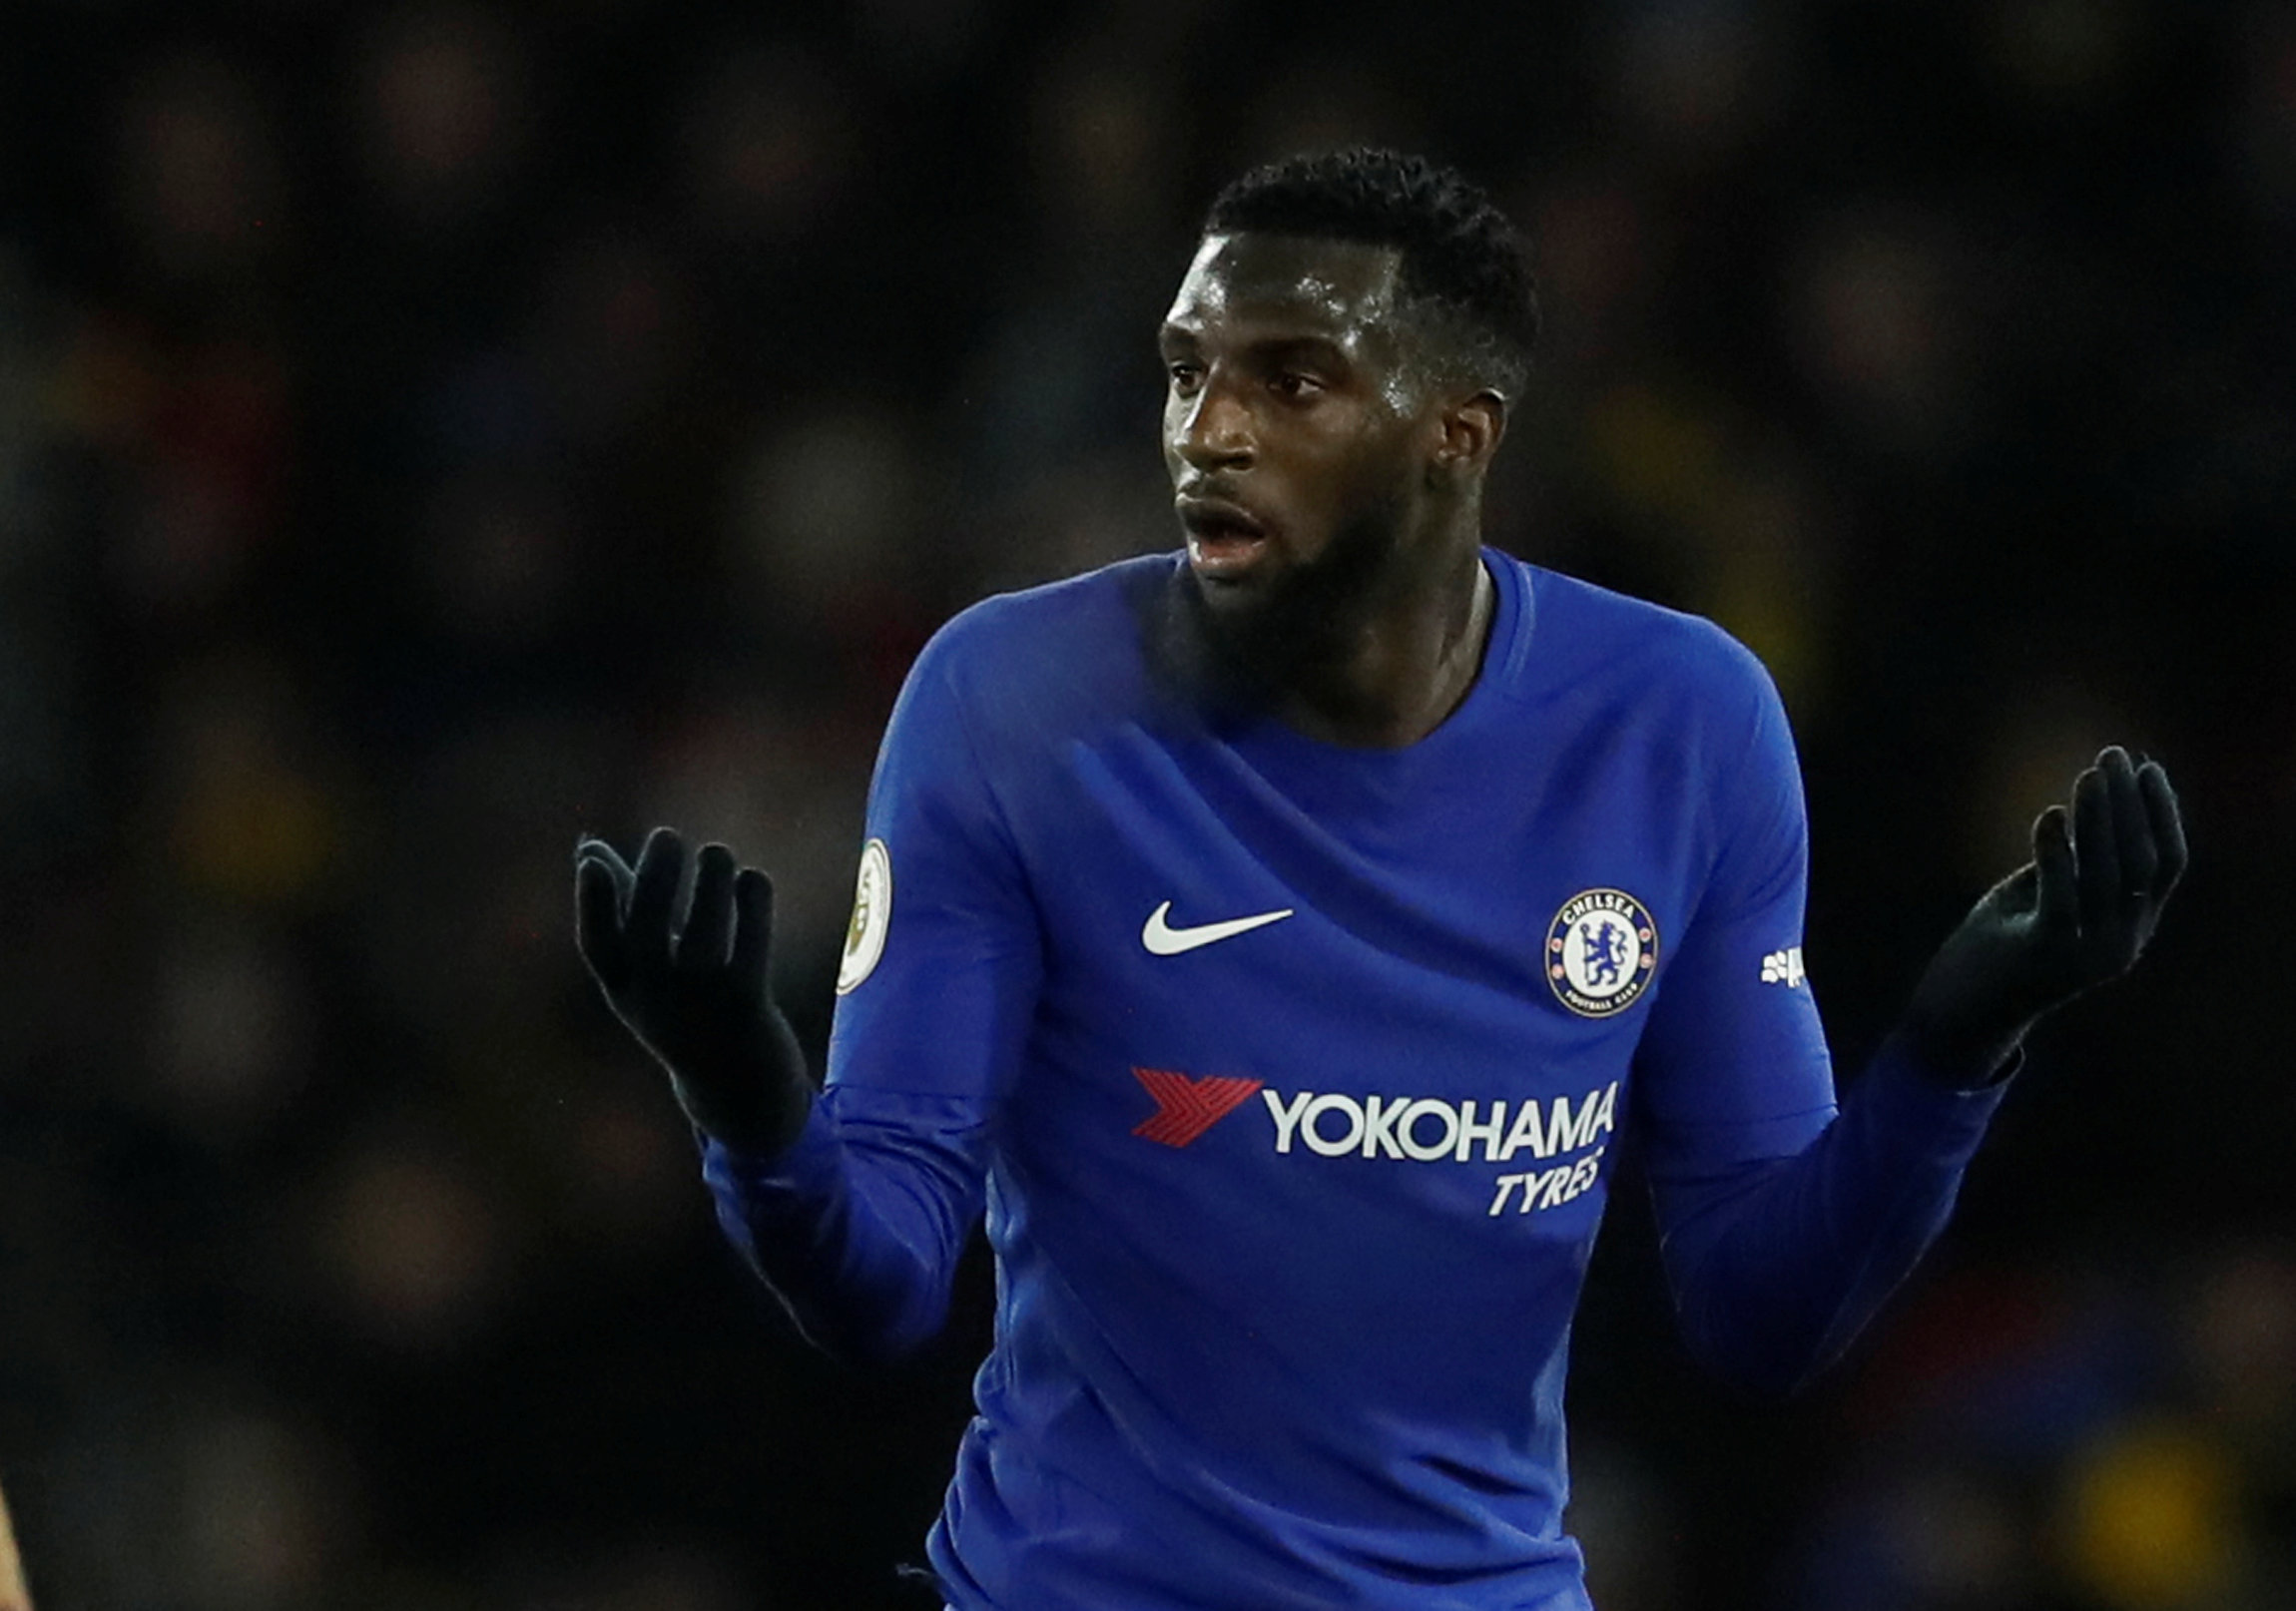 most disappointing Premier League players Bakayoko 2018 Chelsea